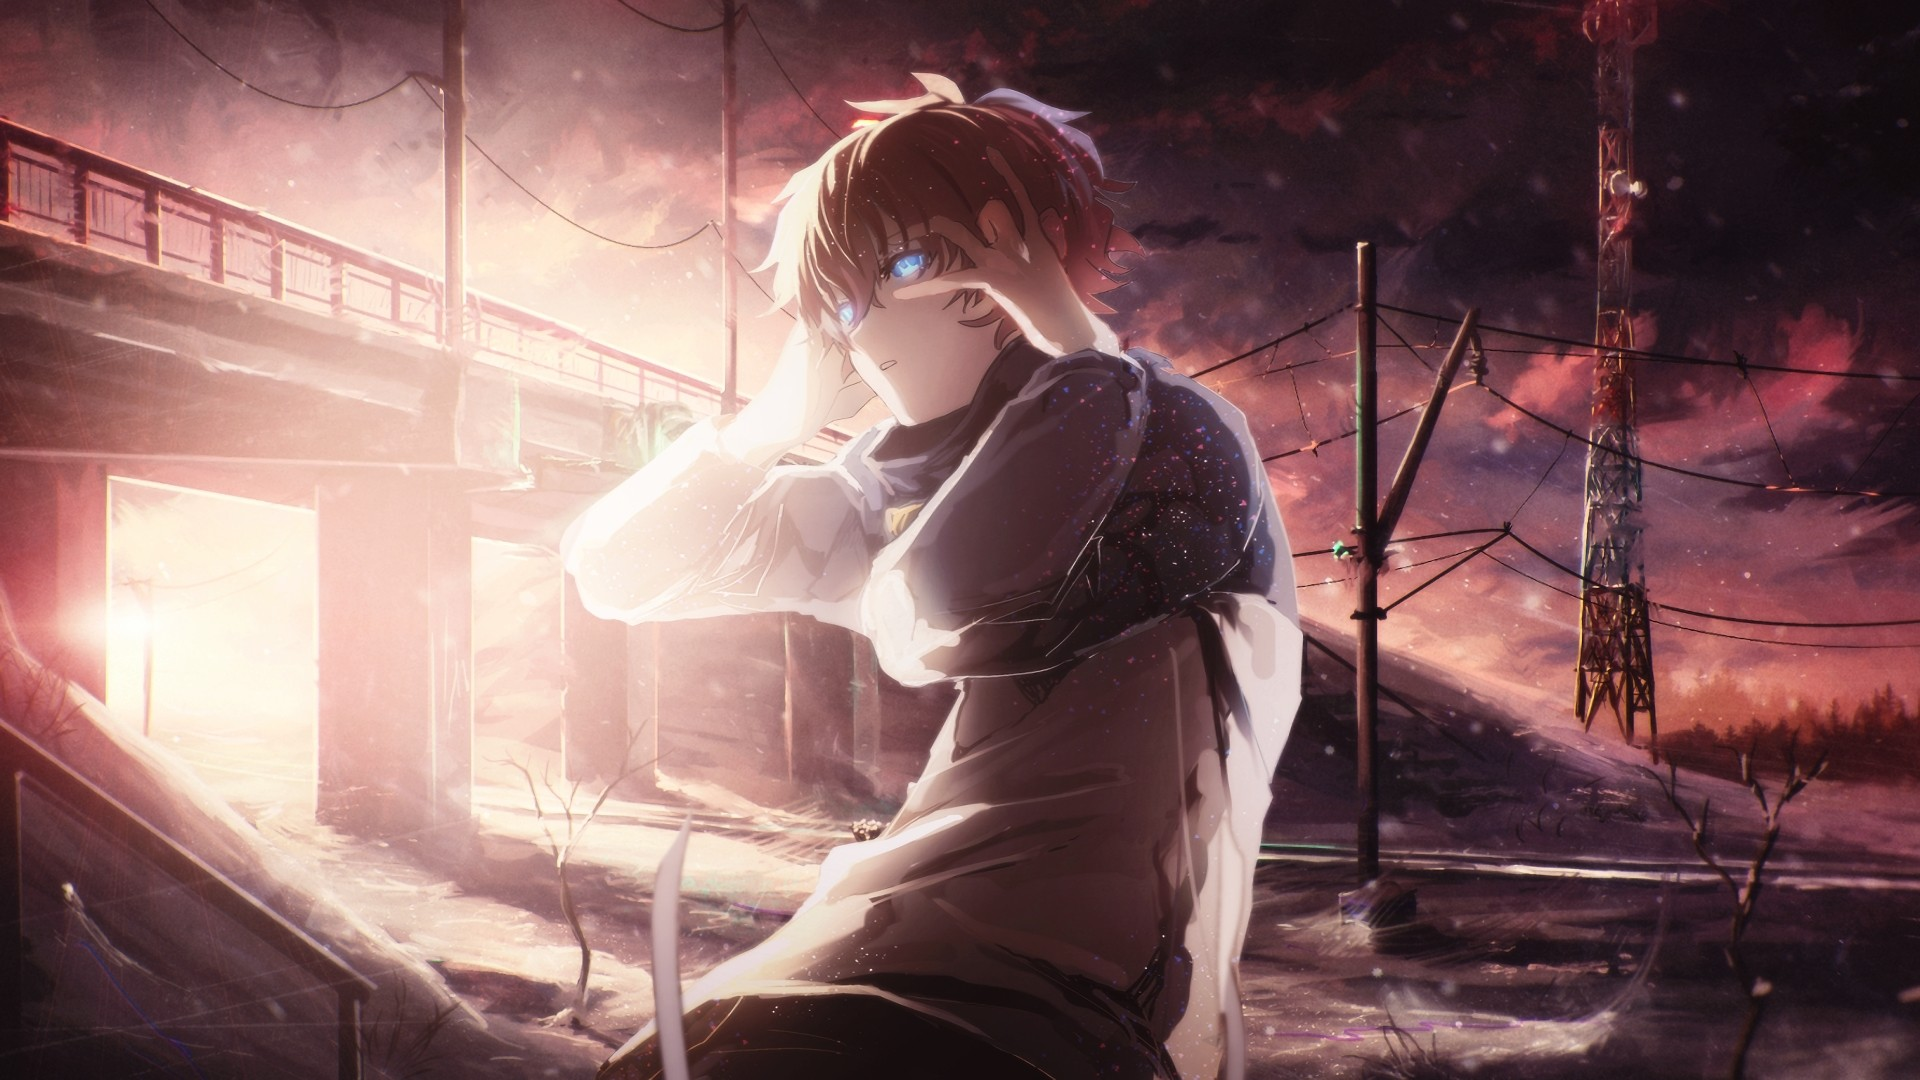 Anime Boy Wallpaper and Background